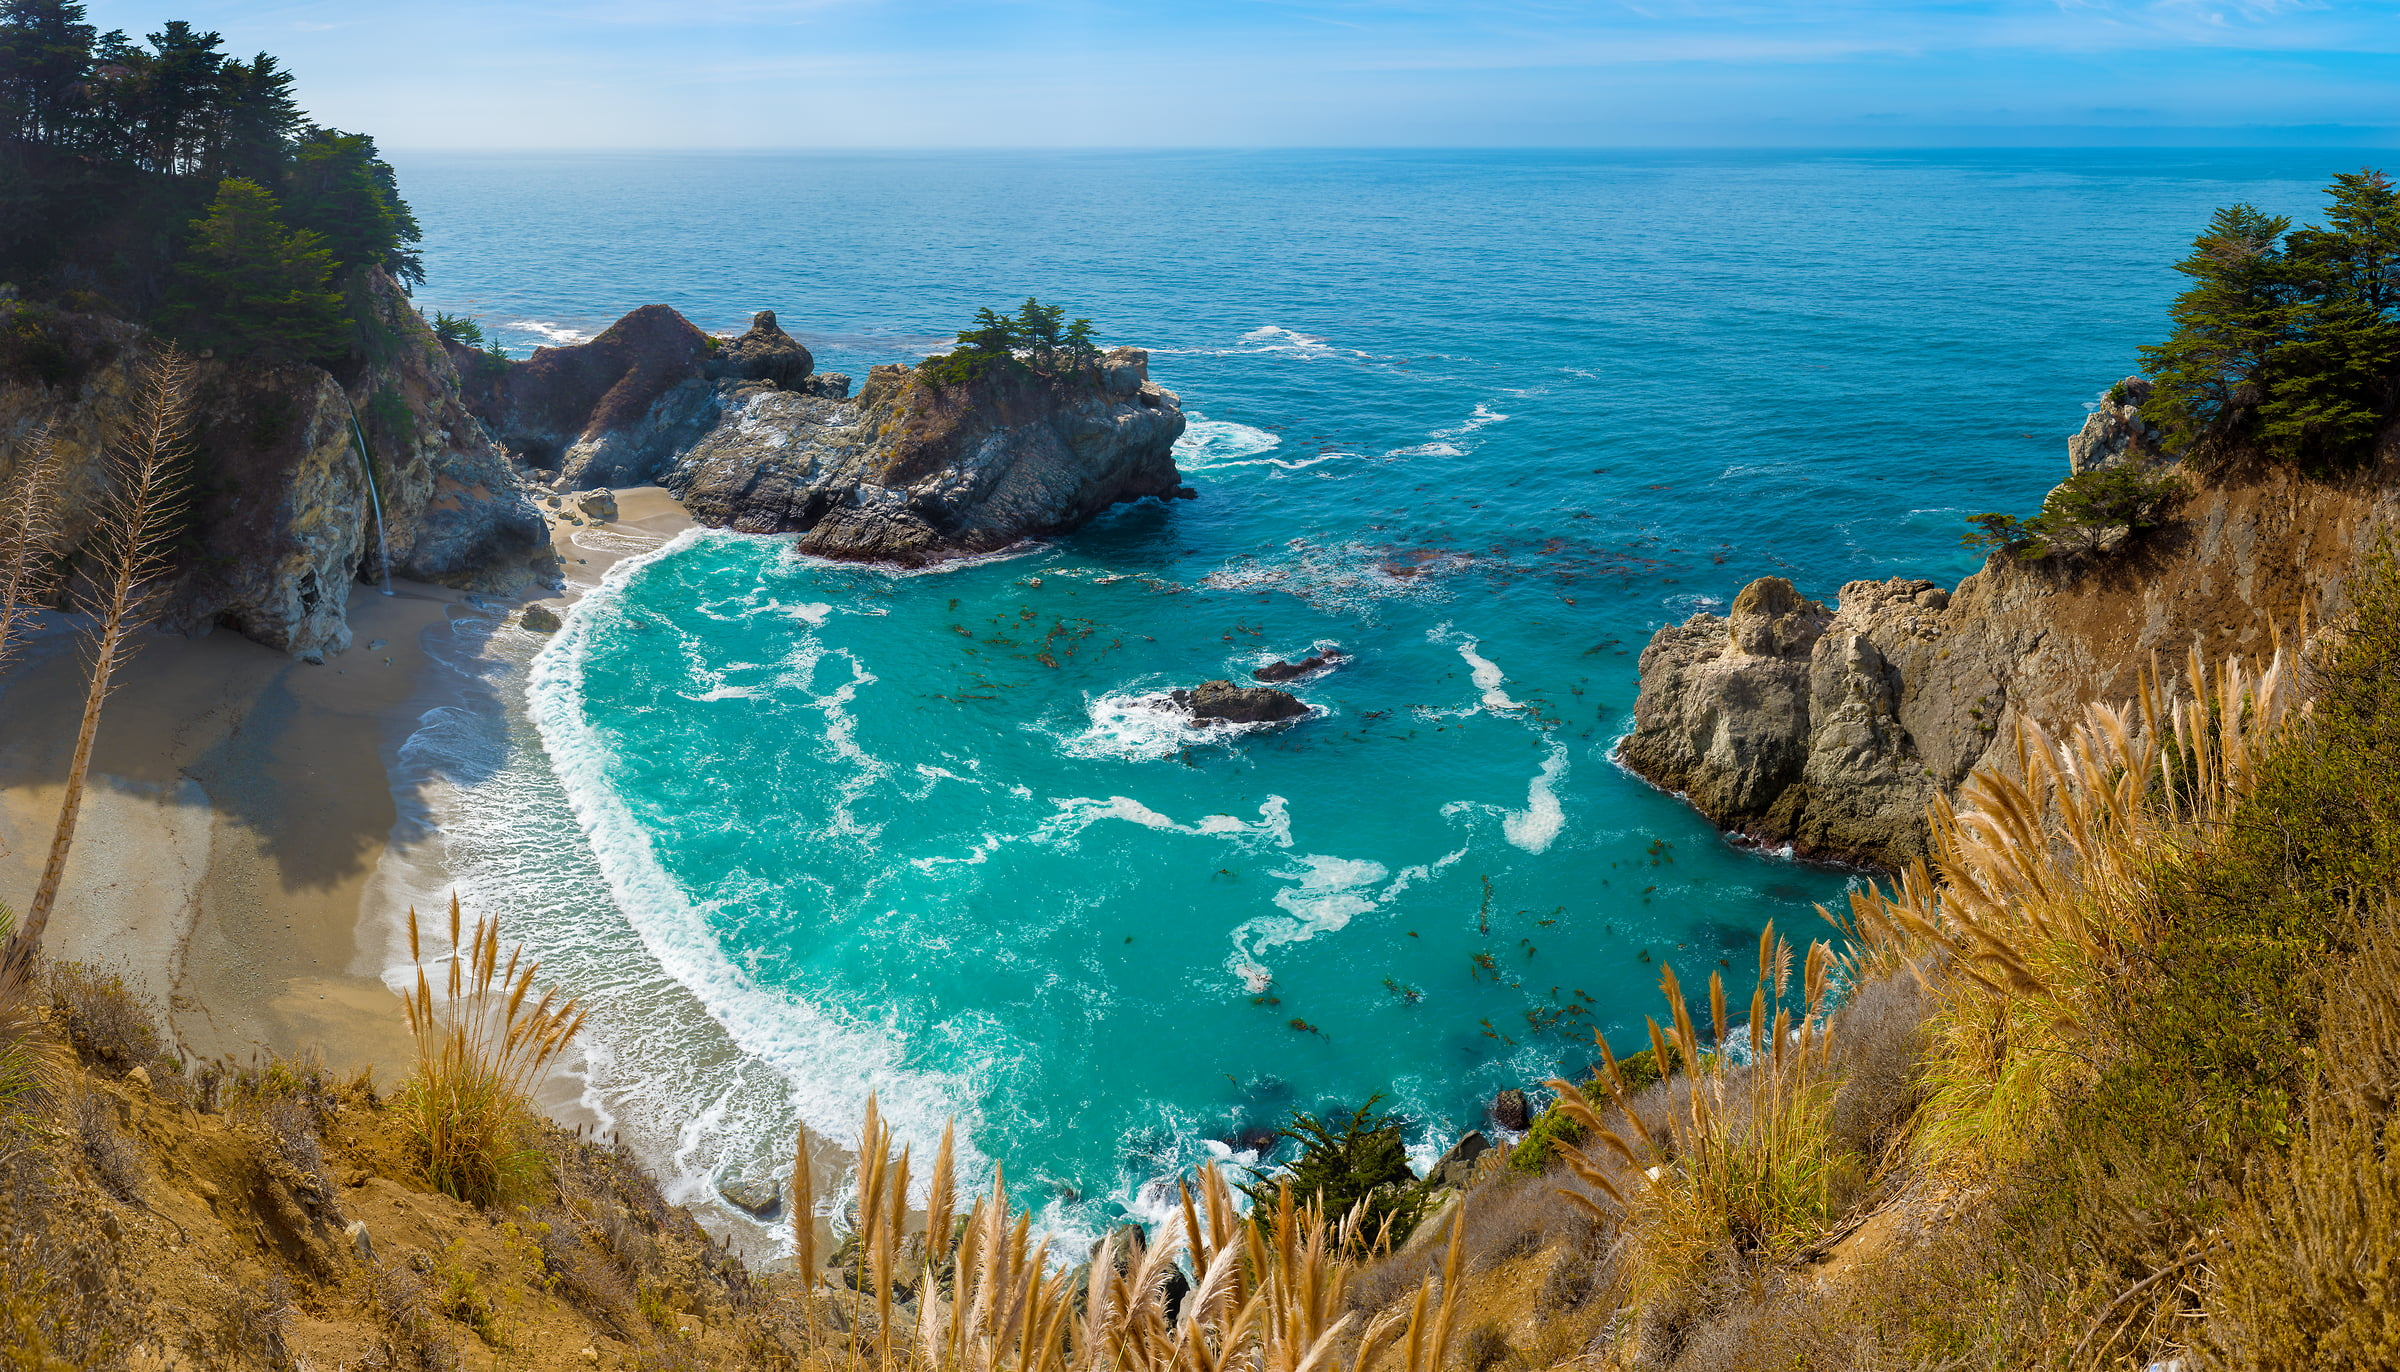 404 megapixels! A very high resolution, large-format VAST photo of a beach, waterfall, and the ocean; fine art photograph created by Jim Tarpo in Big Sur, California